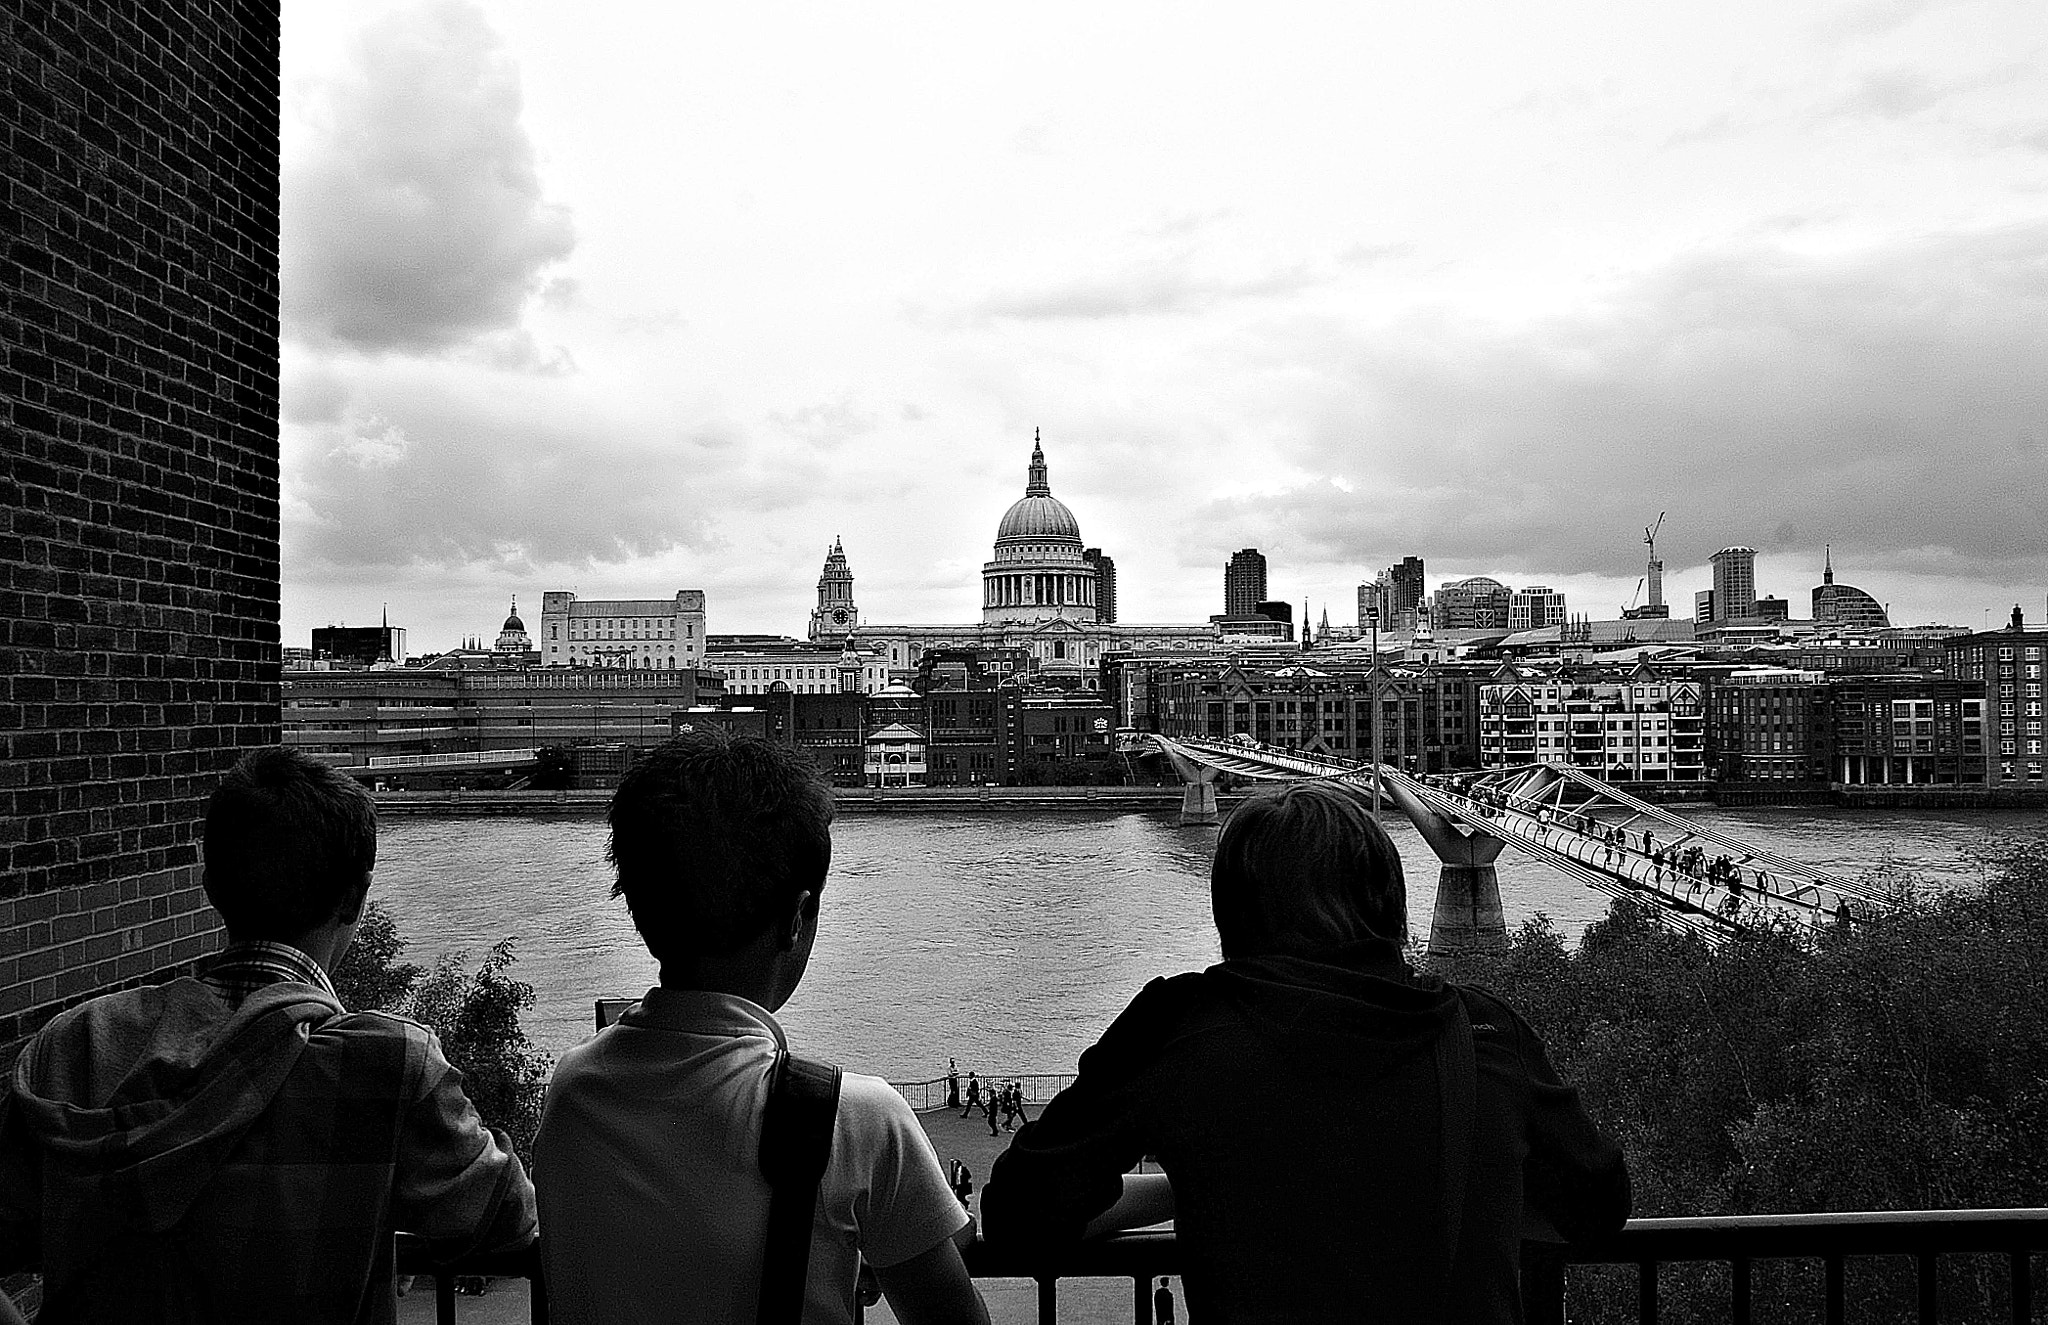 Photograph St paul's in london by K@mané . on 500px